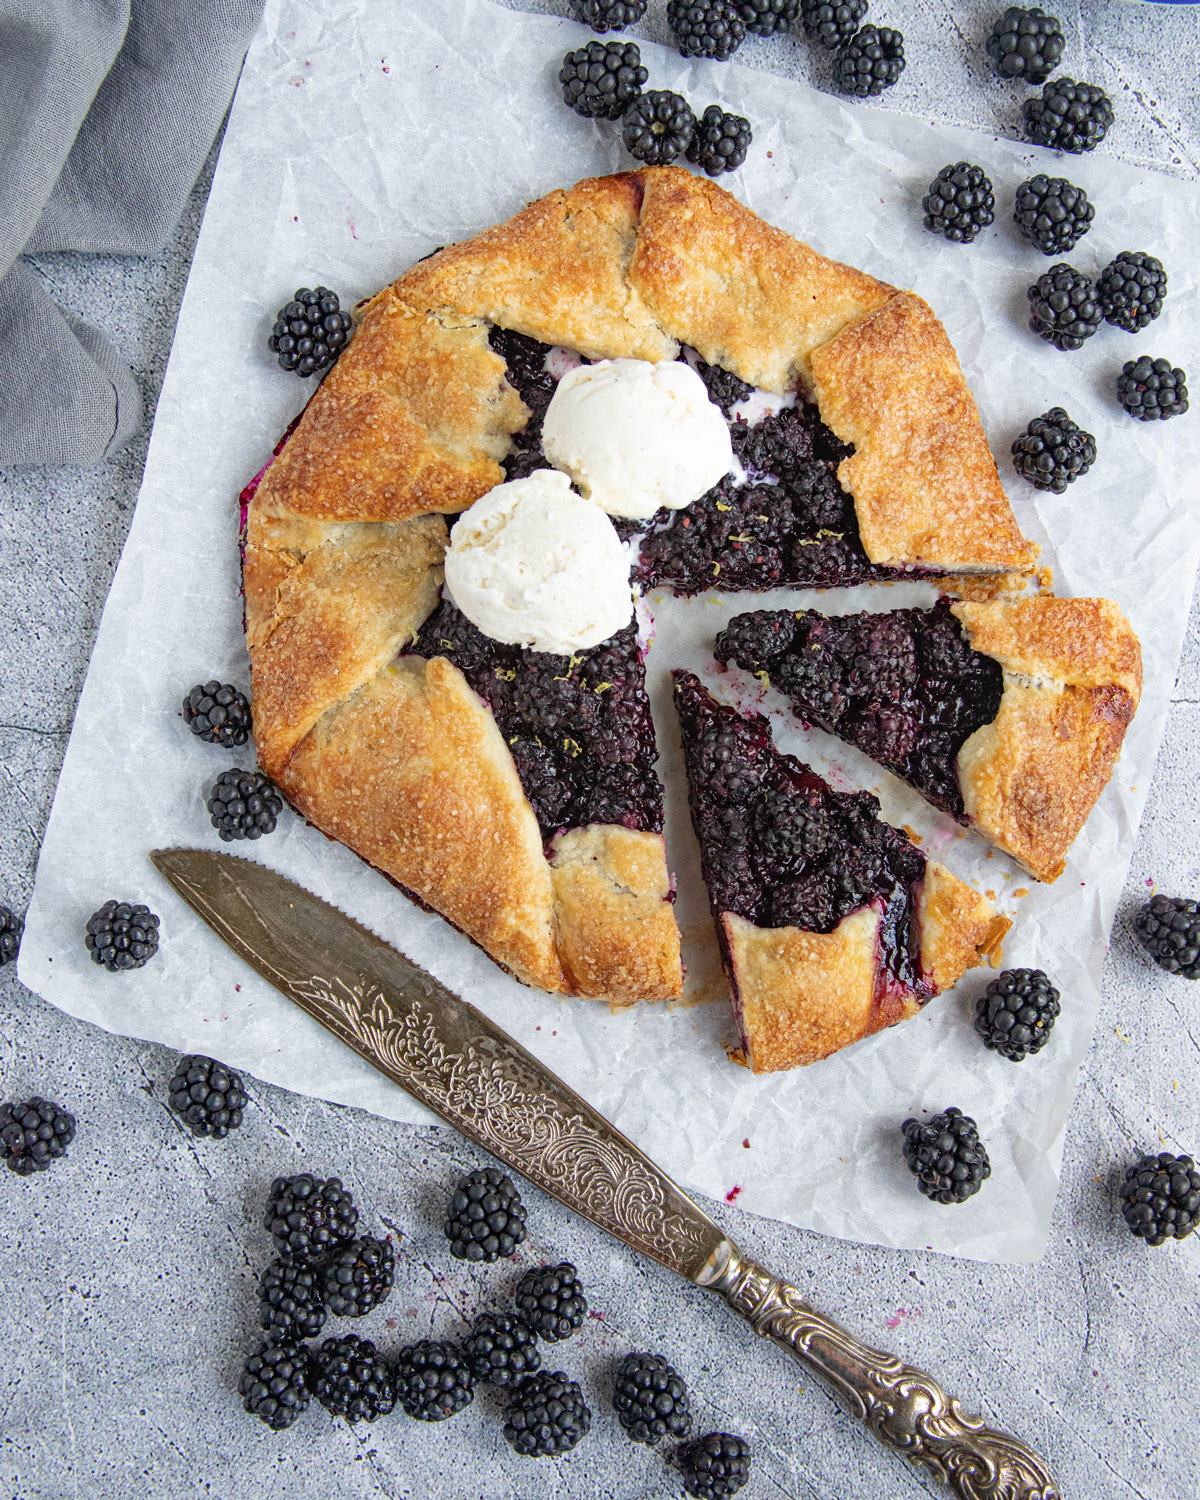 Blackberry Galette with Vanilla Ice Cream